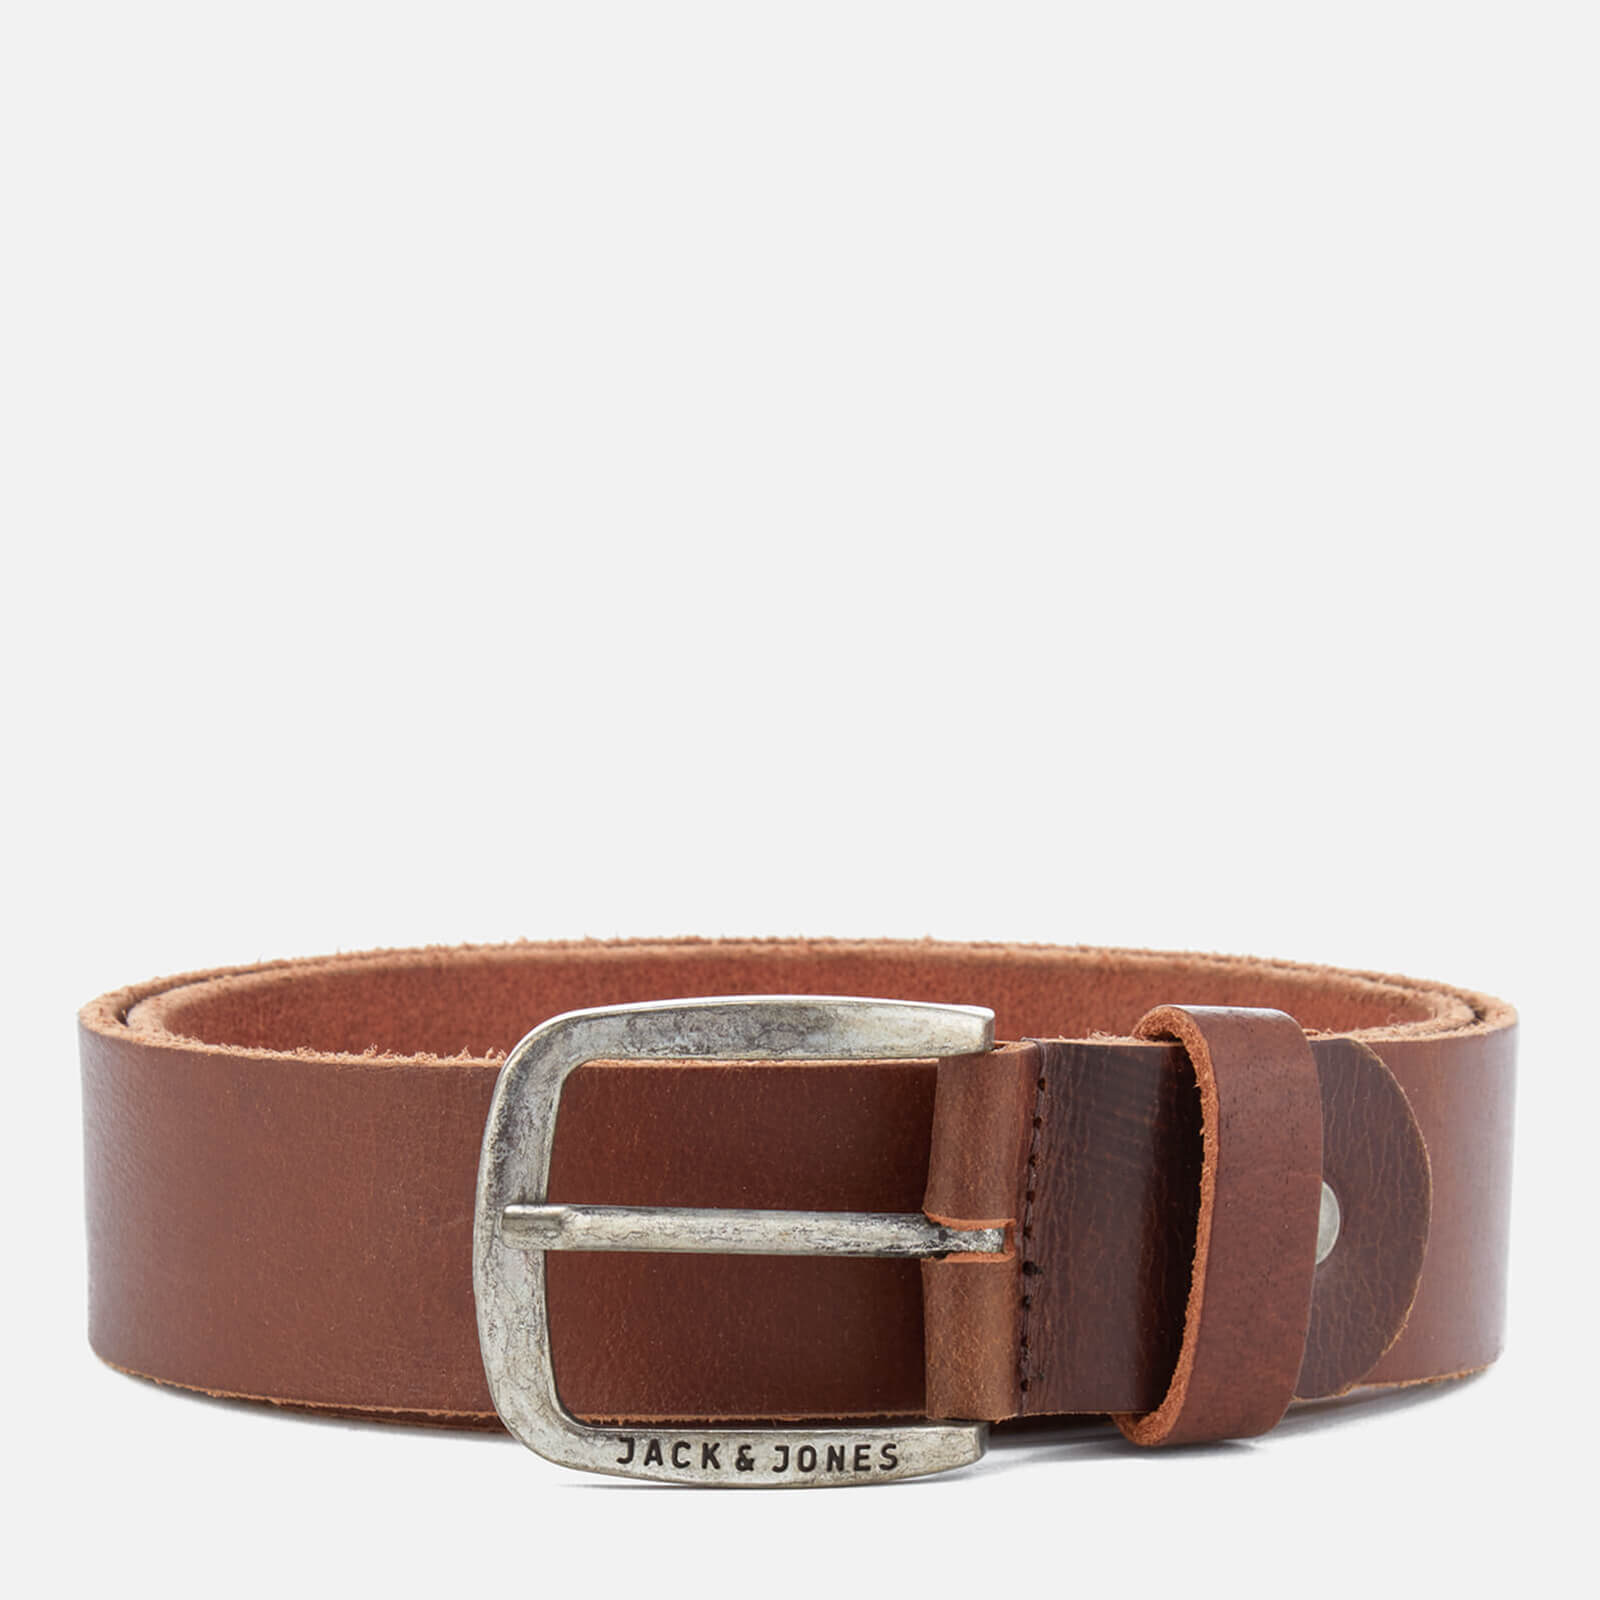 Ceinture Cuir Homme Paul Jack & Jones - Marron